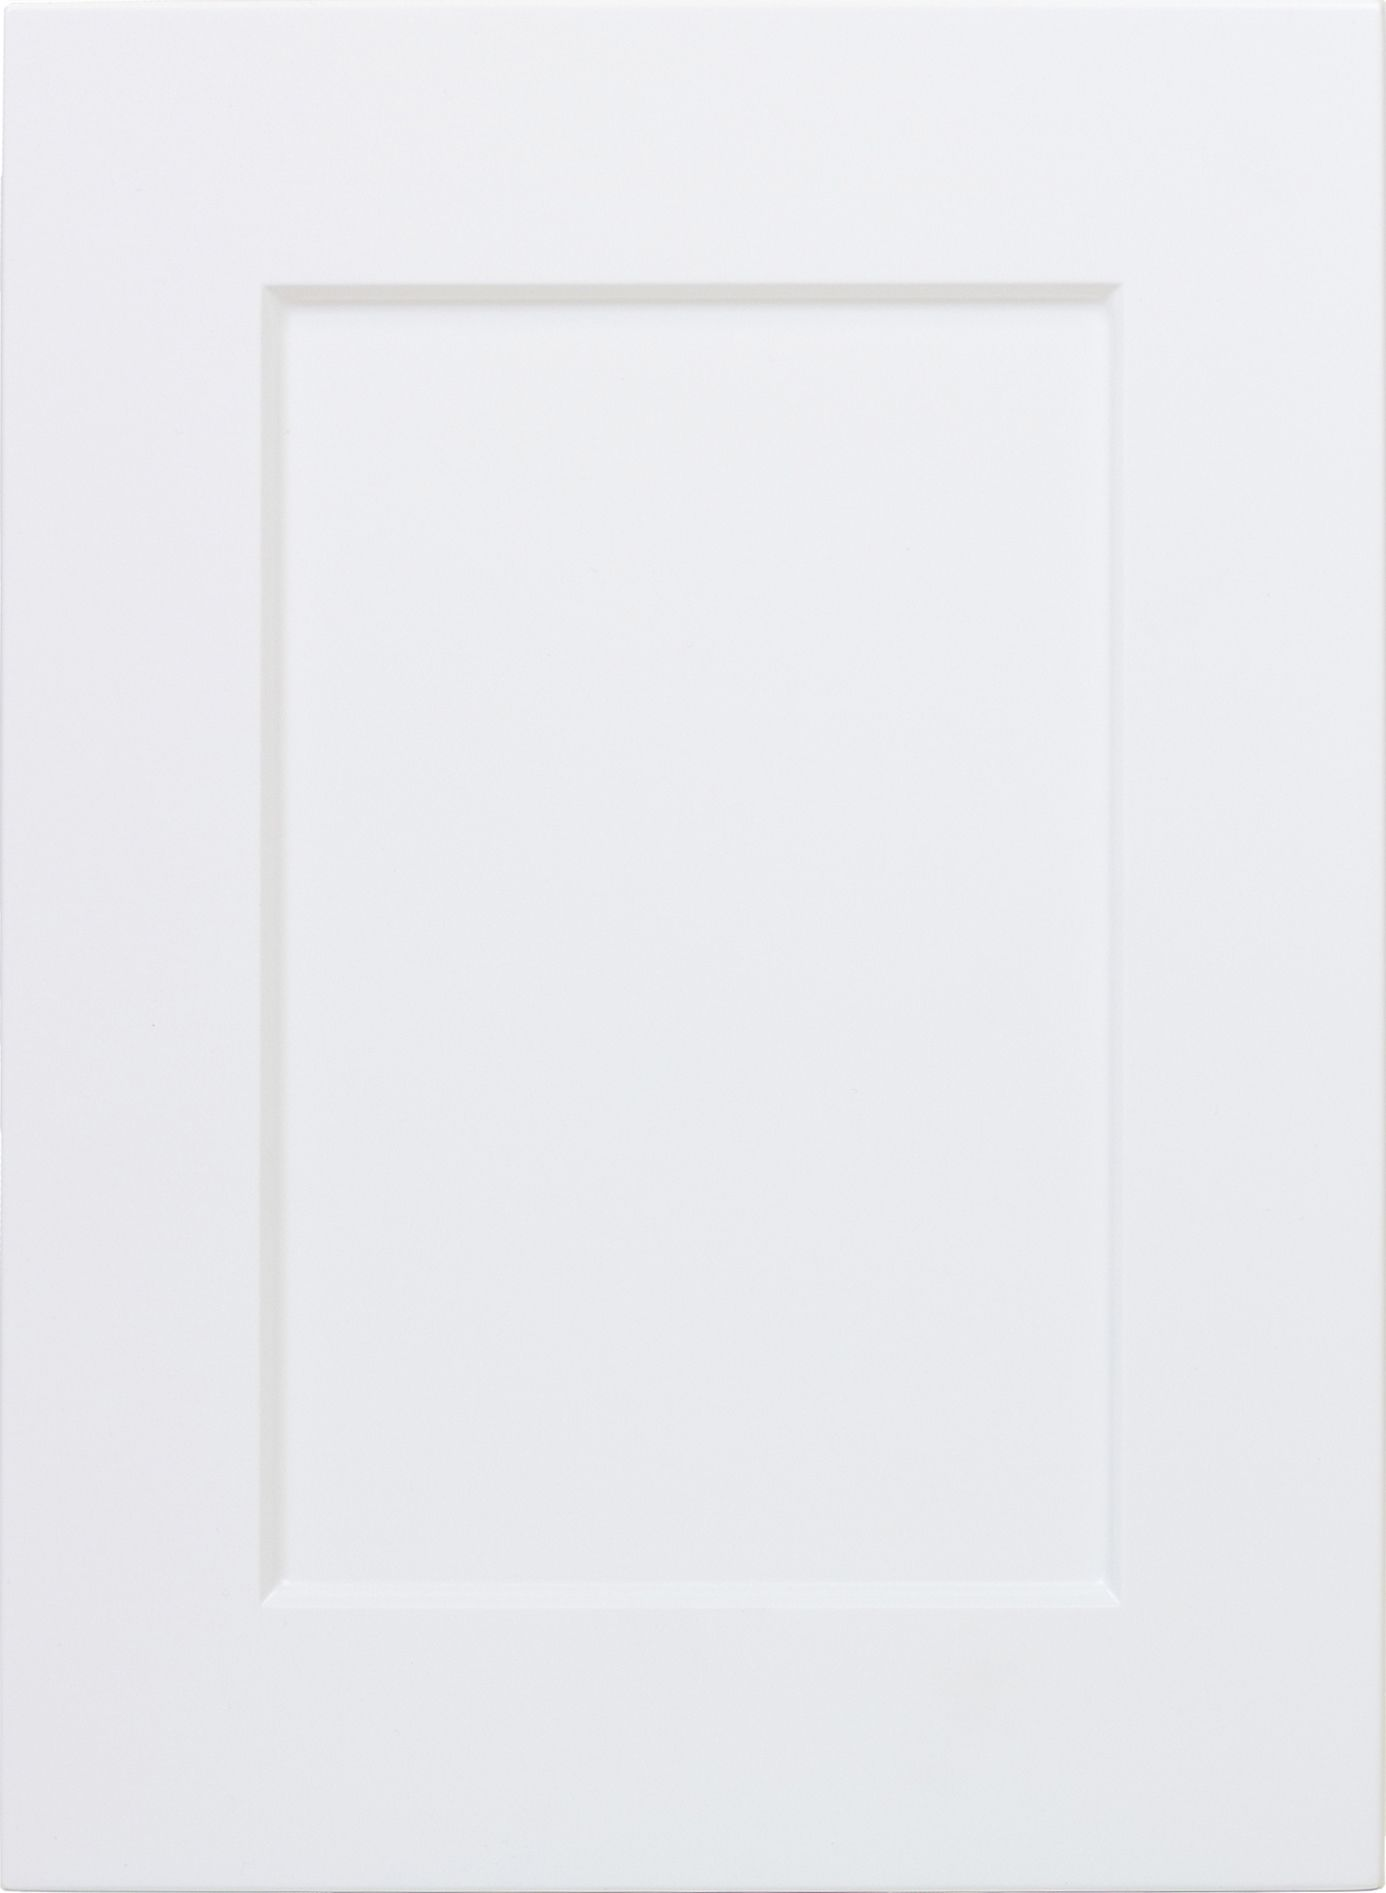 Kitchen And Bath Cabinet Door Samples 11 Quot W X 15 Quot H X 3 4